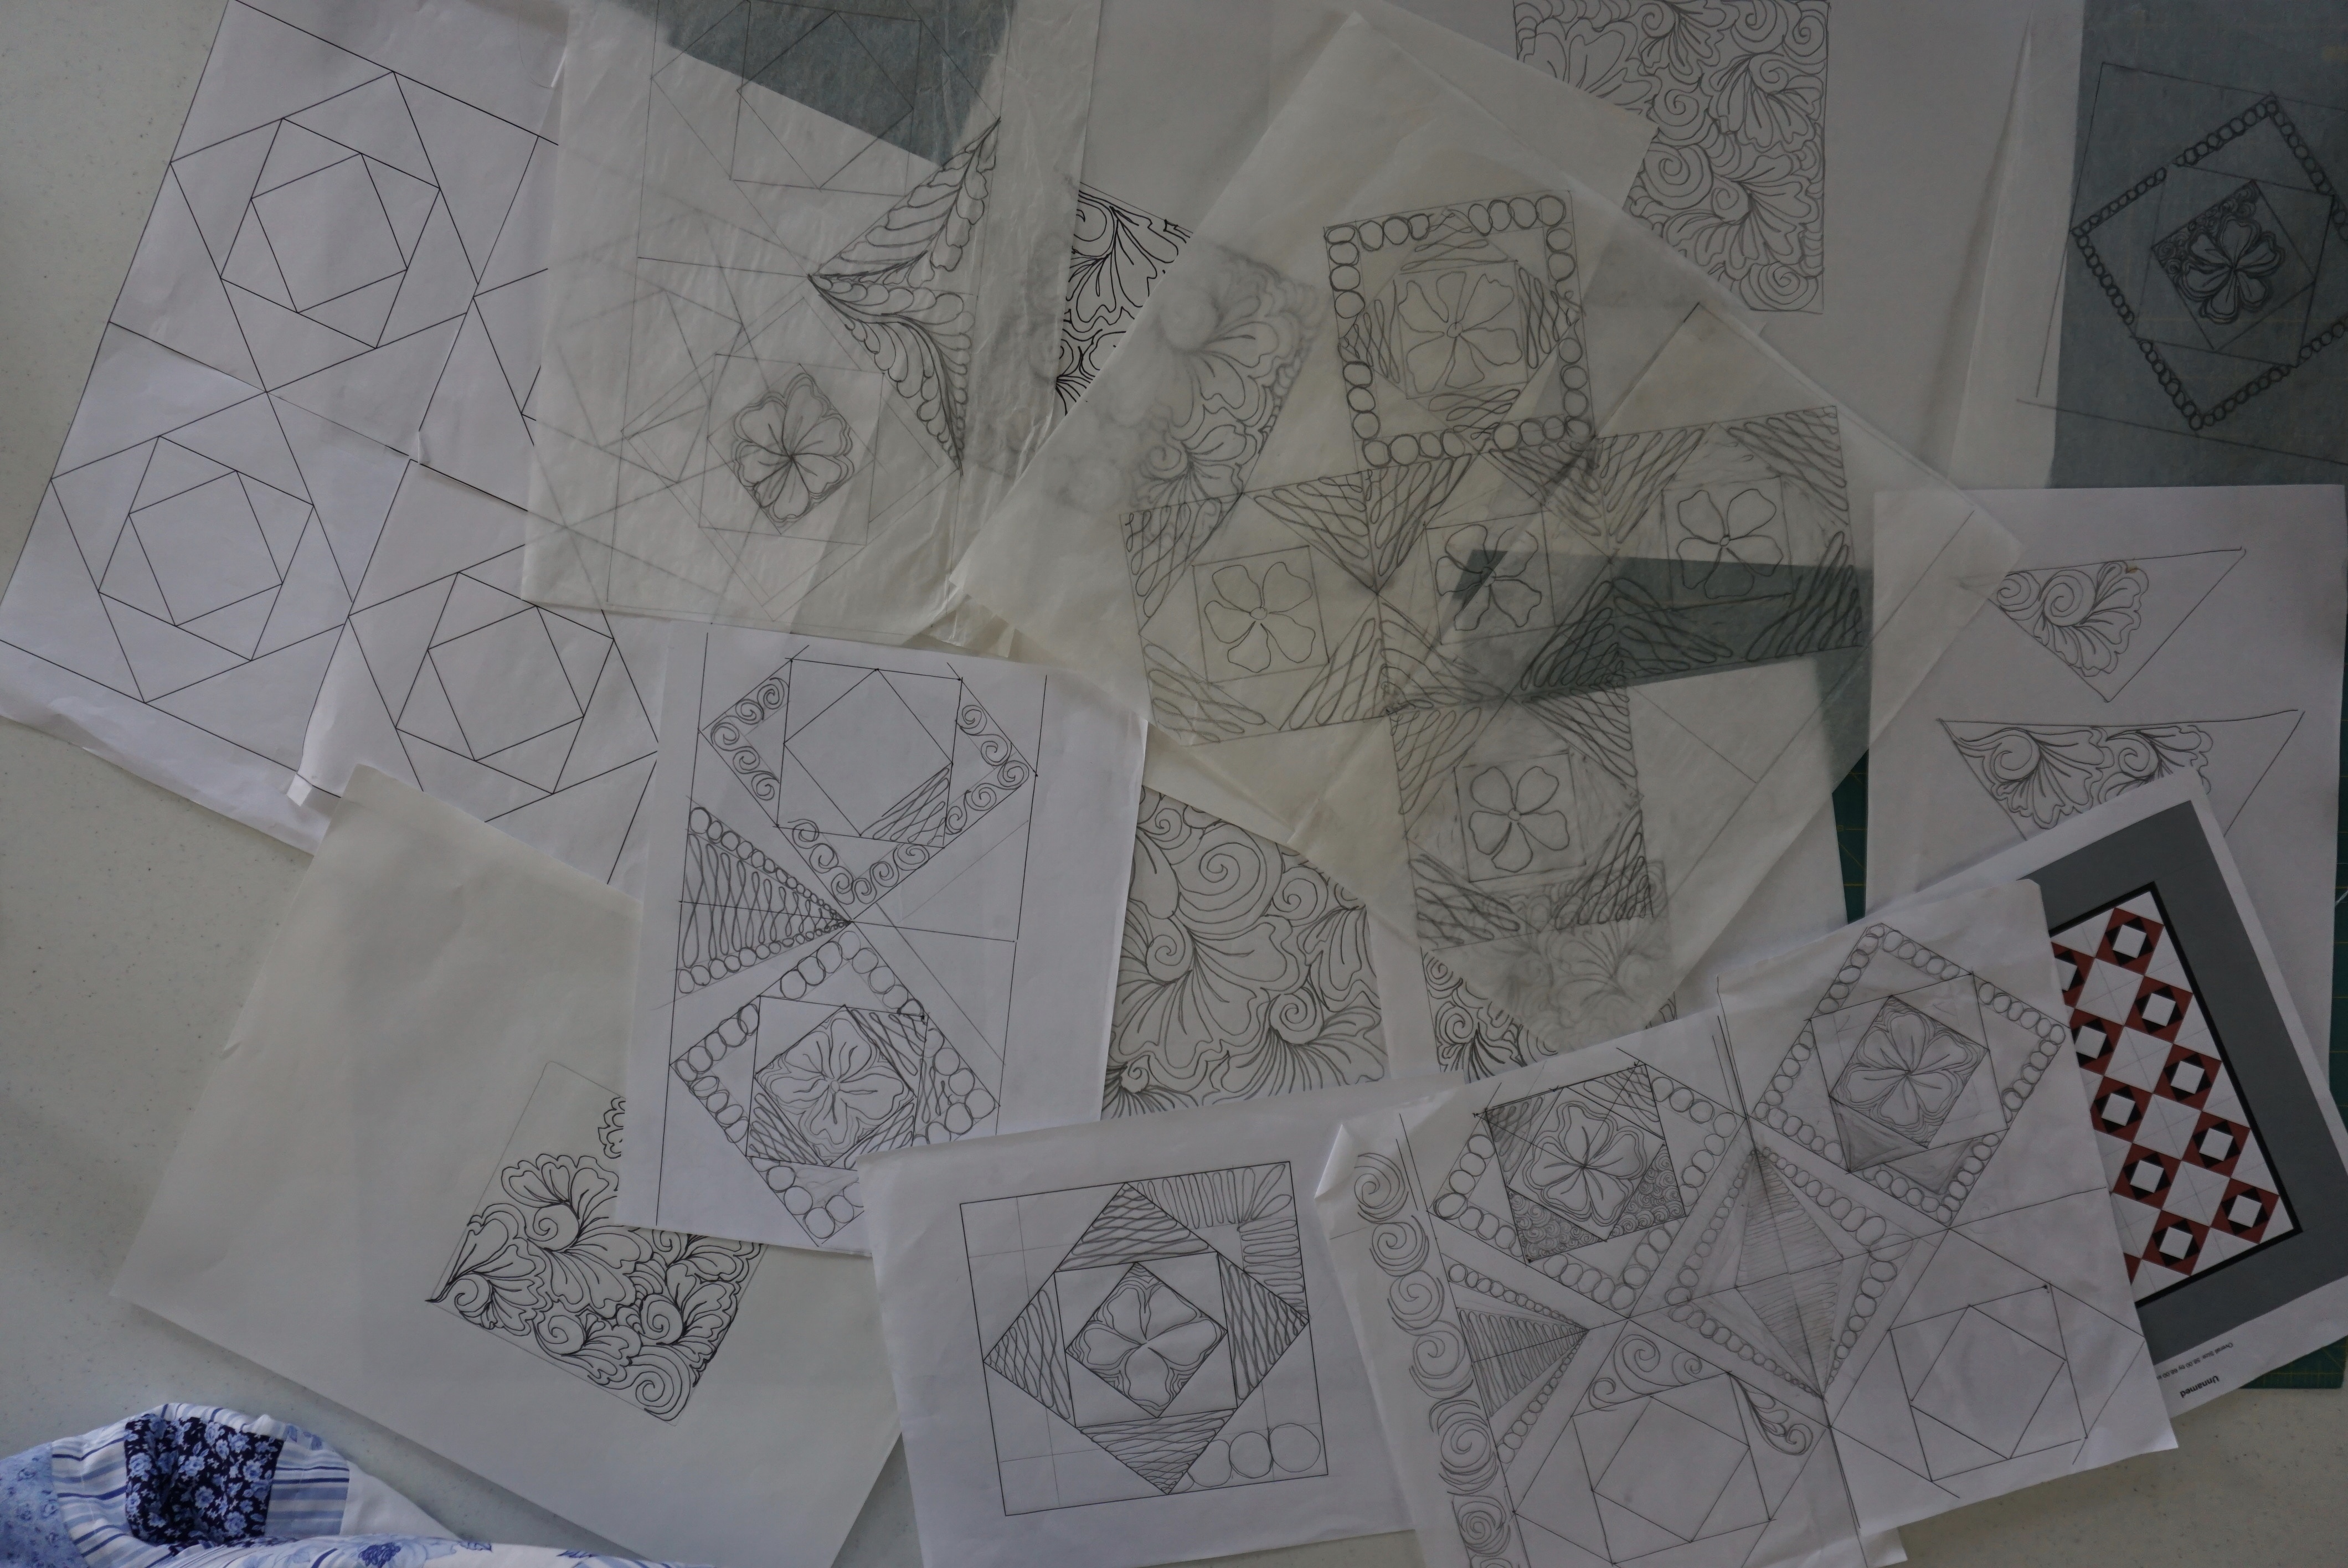 The Quilt Journal - Discovering free motion quilting One Stitch at a ...